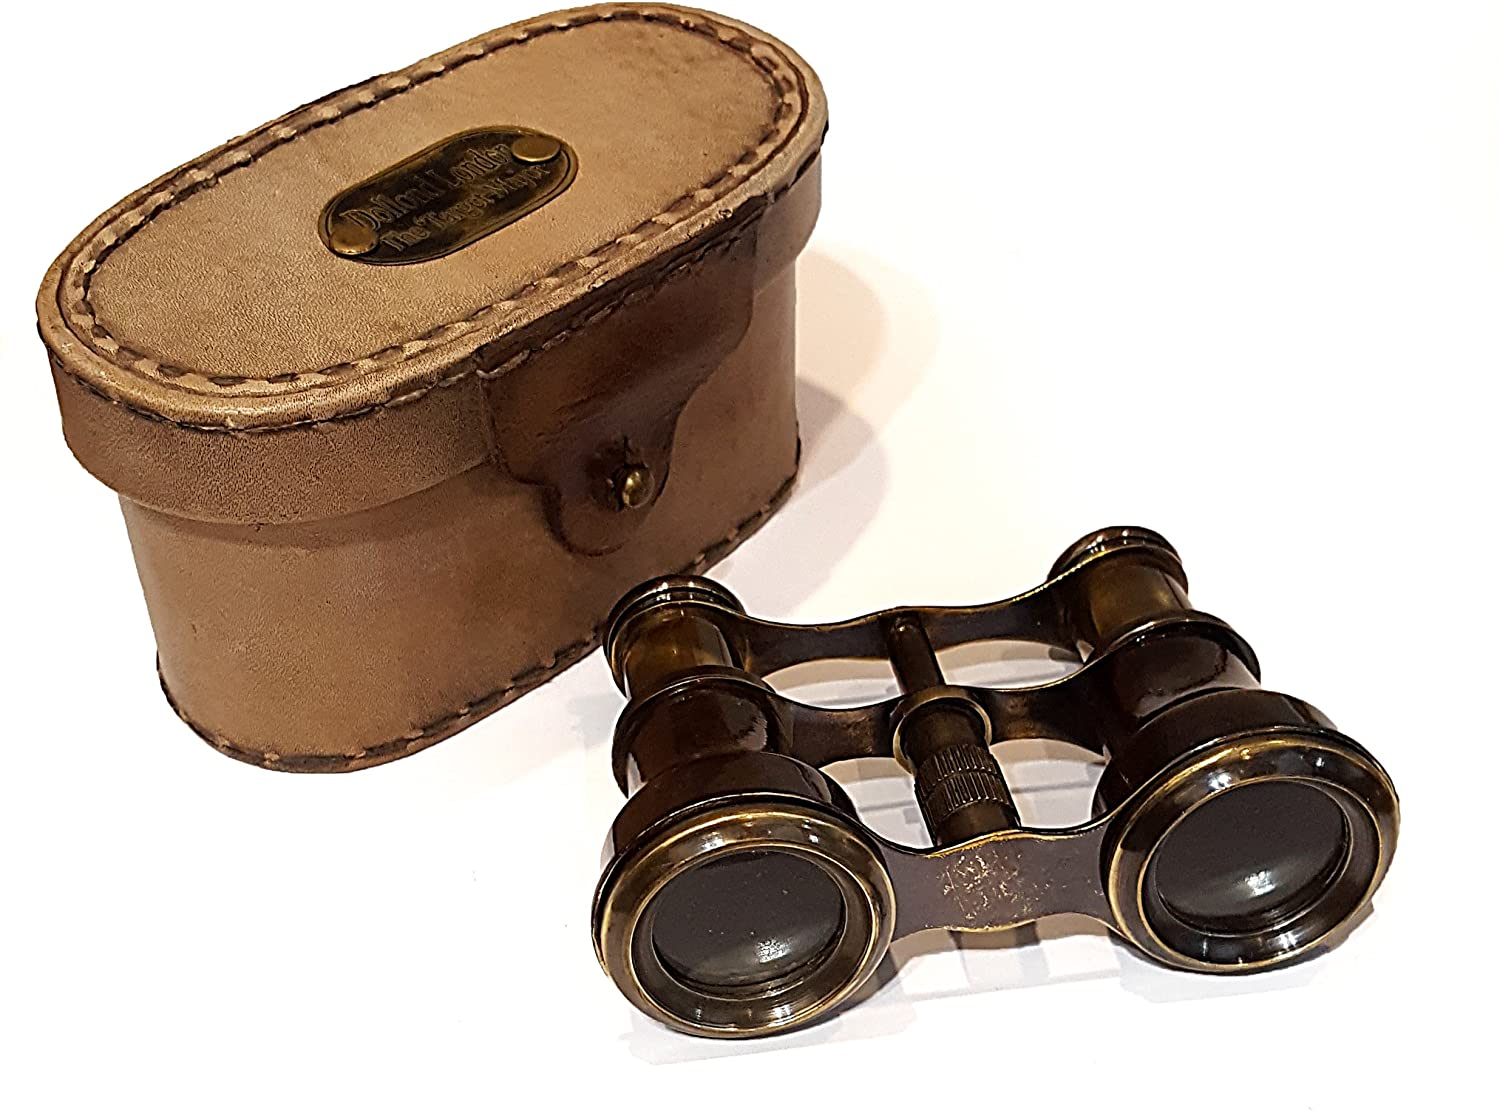 Brass Antique Monuclar Mini Binocular Ancient Pirate Focus Spyglass Leather Box